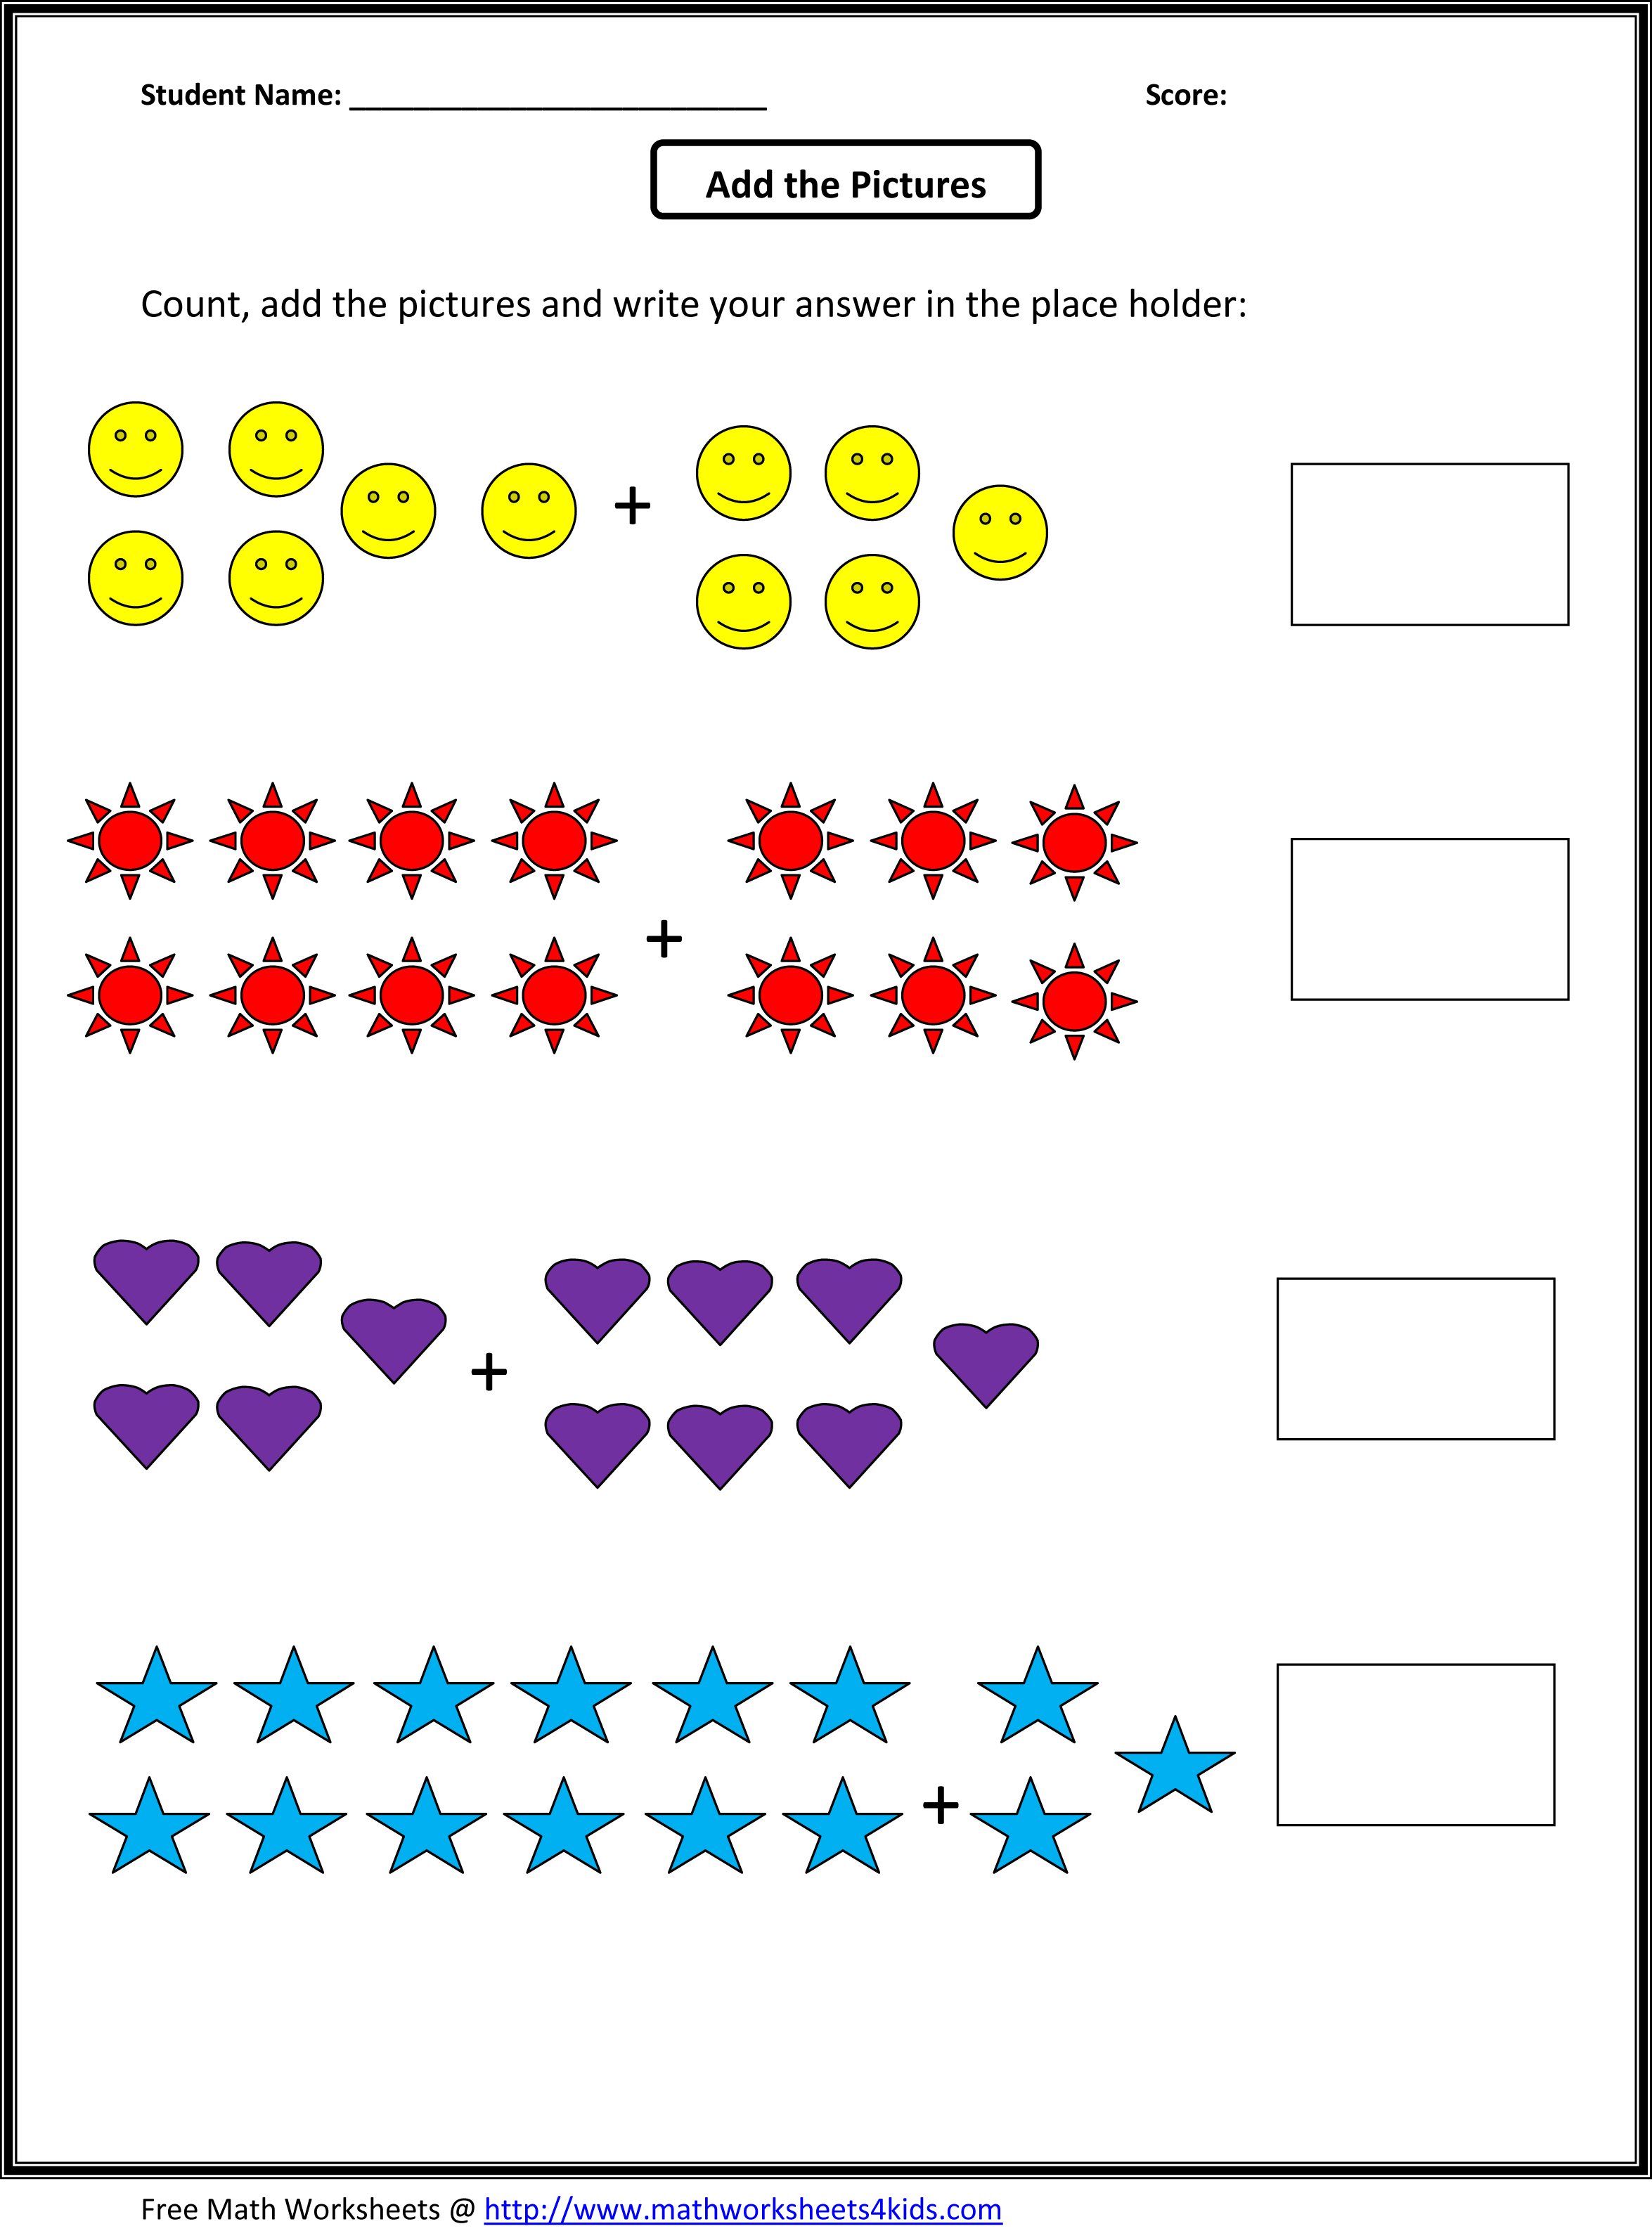 Proatmealus  Surprising Grade  Maths Worksheet  Reocurent With Heavenly Math Worksheets For St Grade Free  Reocurent With Extraordinary Worksheet On D Shapes Faces Vertices And Edges Also Handling Data Worksheets Ks In Addition Solving For A Variable Worksheets And Super Teacher Worksheets Free Username And Password As Well As Addition Worksheets Kindergarten Free Printables Additionally Year  Math Worksheets Printables Free From Reocurentcom With Proatmealus  Heavenly Grade  Maths Worksheet  Reocurent With Extraordinary Math Worksheets For St Grade Free  Reocurent And Surprising Worksheet On D Shapes Faces Vertices And Edges Also Handling Data Worksheets Ks In Addition Solving For A Variable Worksheets From Reocurentcom